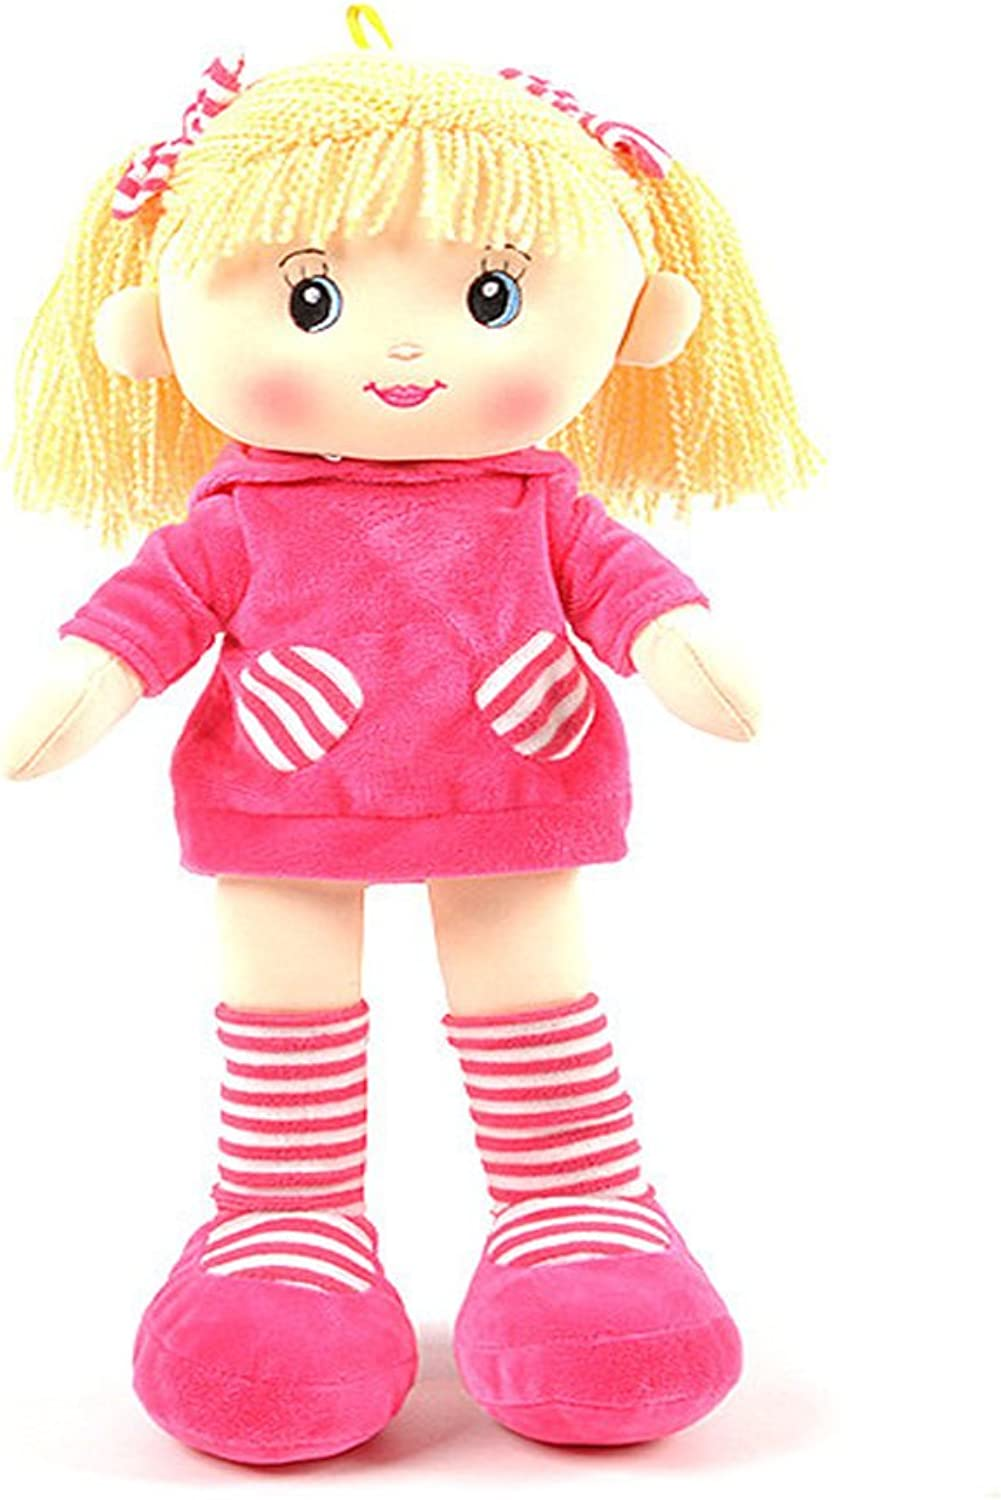 Linzy Paola Rag Doll with Short Dress and High Striped Socks, Magenta 16